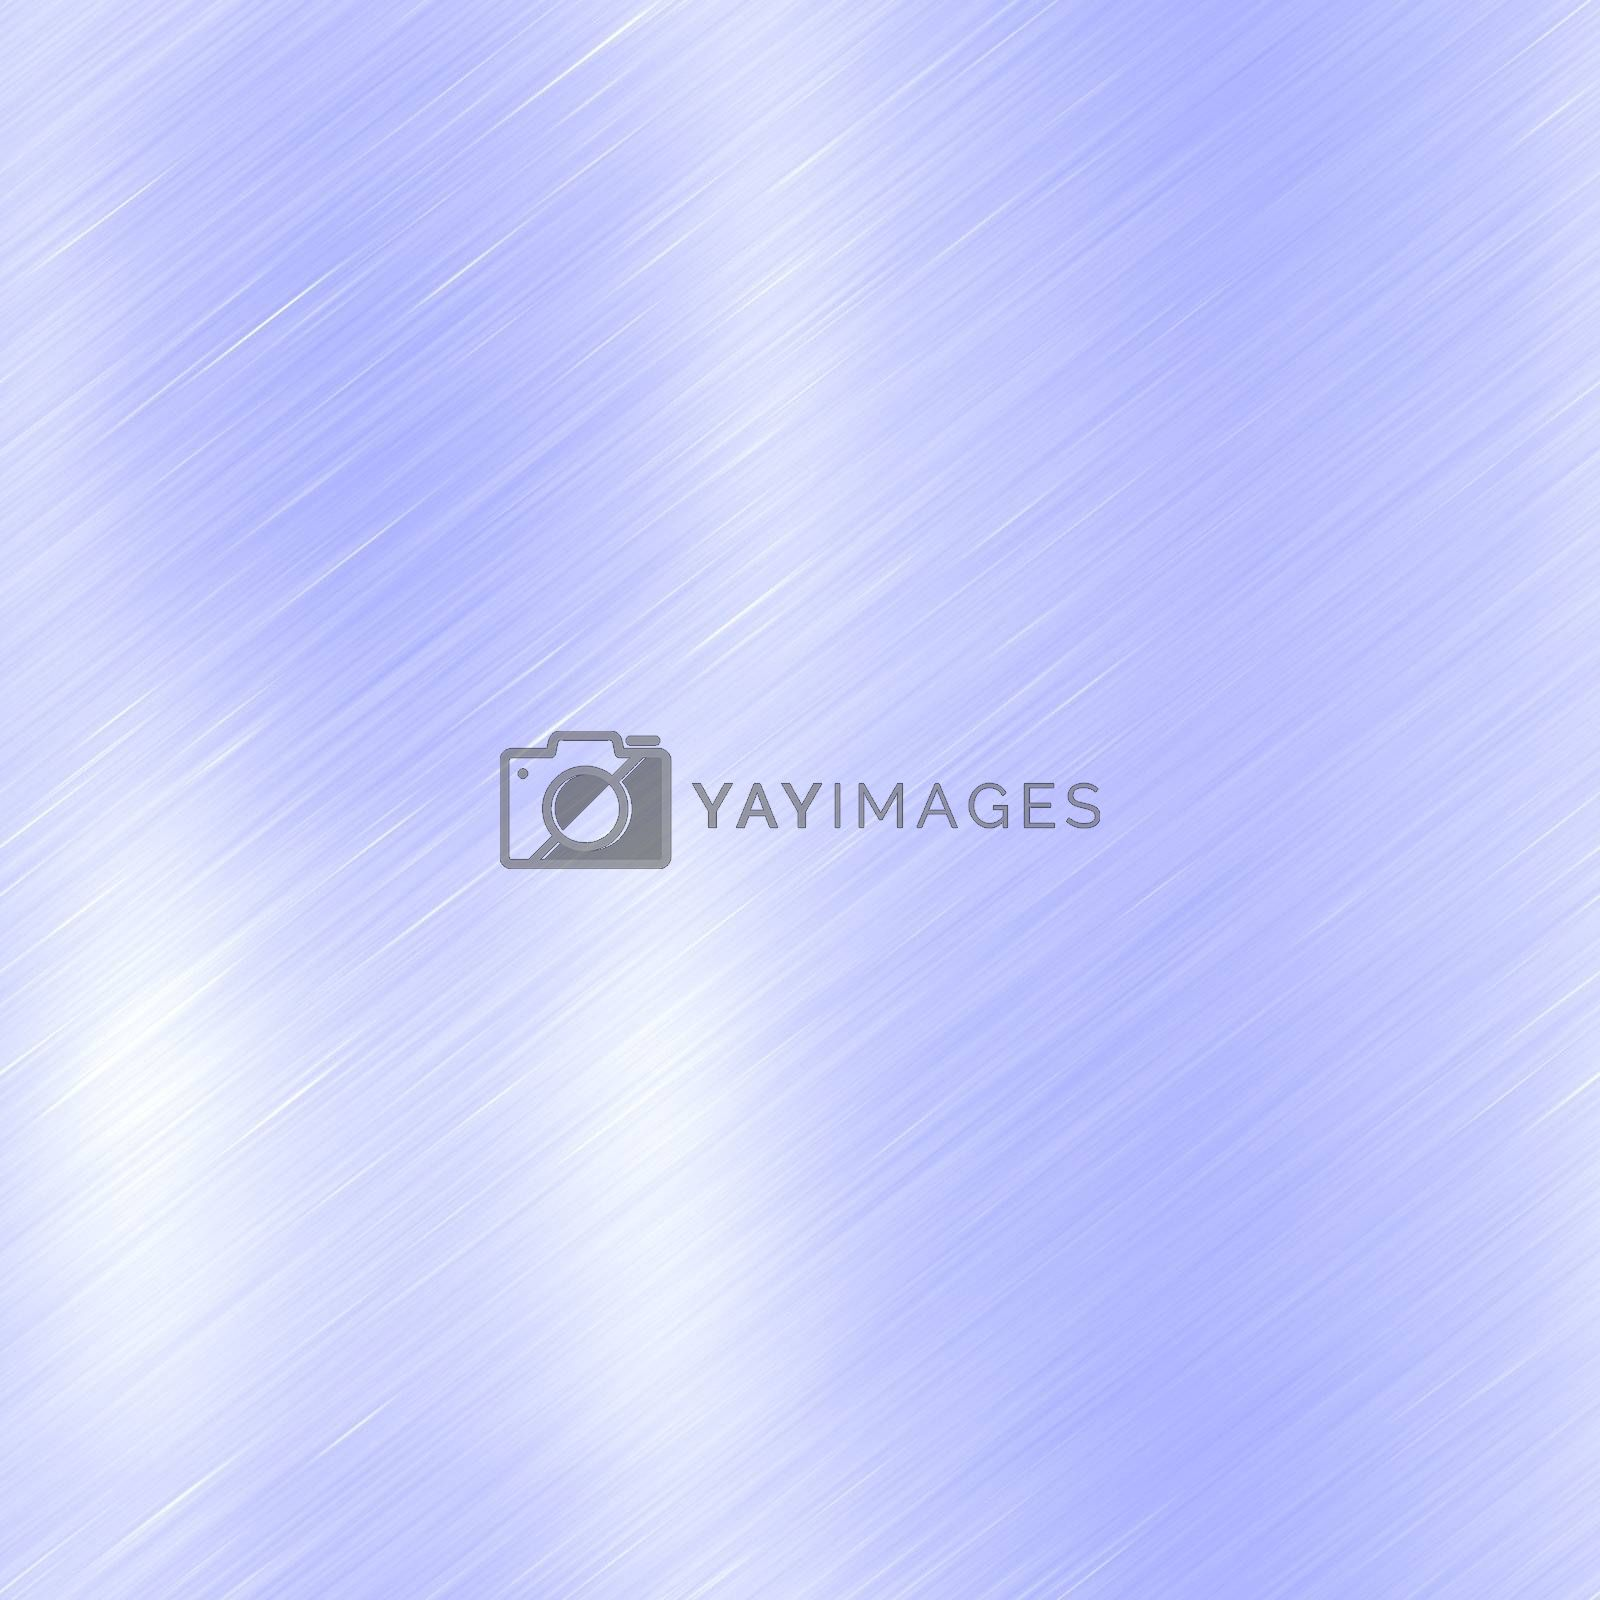 Royalty free image of Metal texture by kgtoh